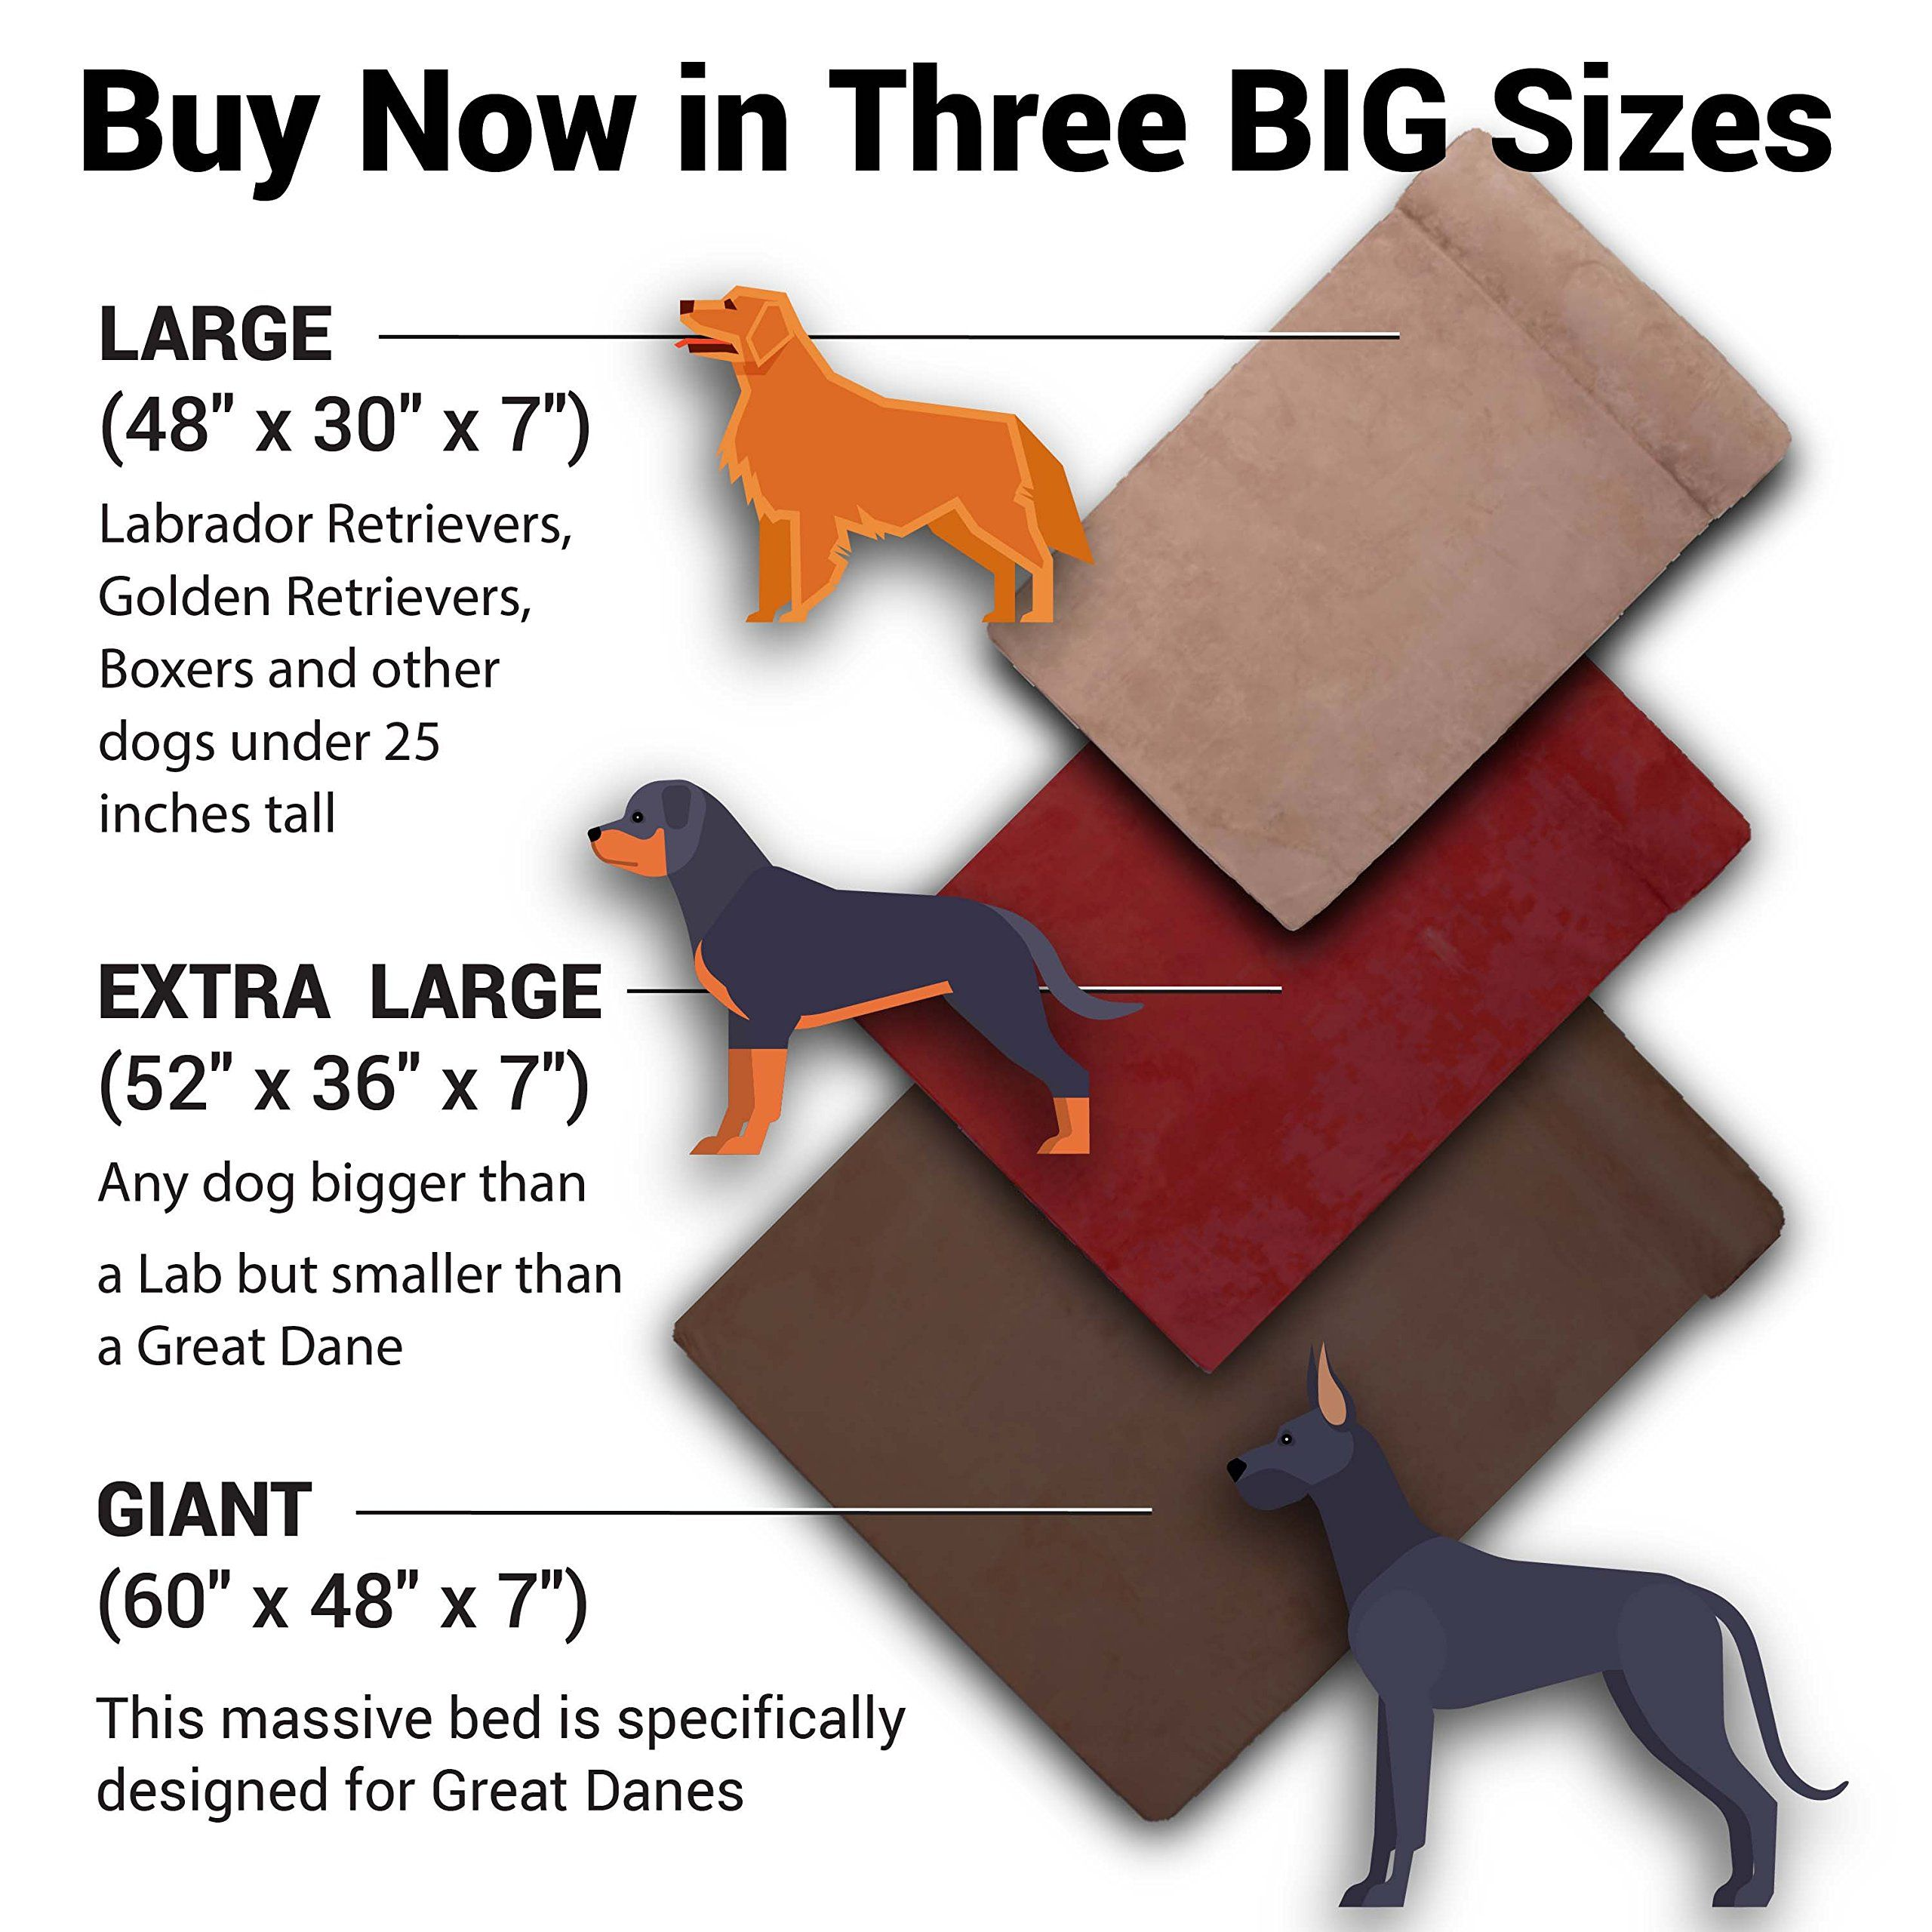 Pin by Glenn Normano on Dog Beds (With images) Big dog